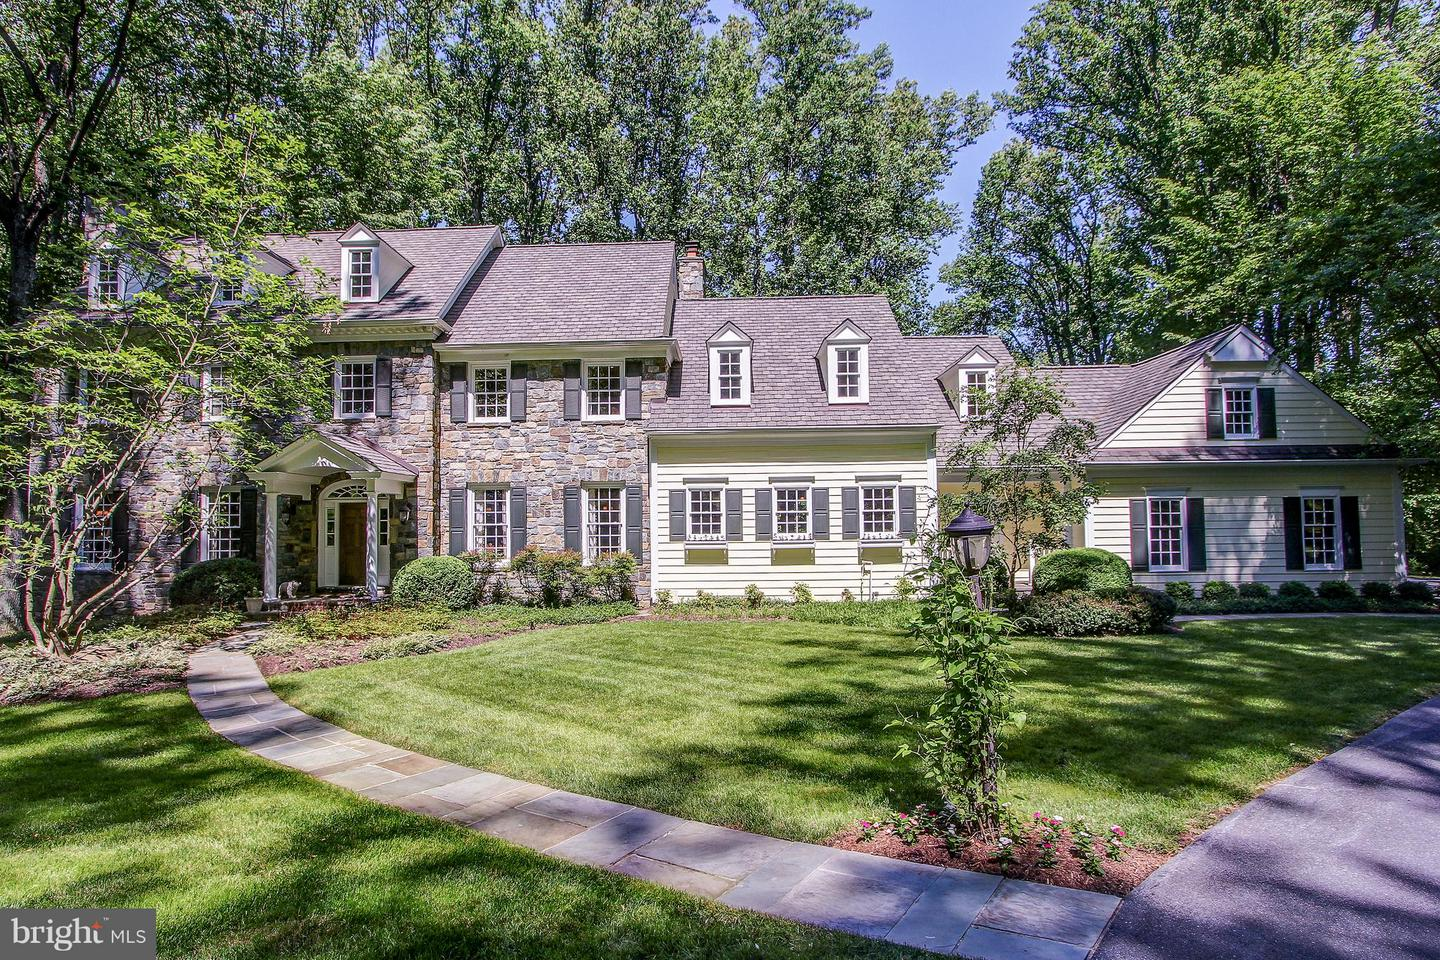 11217 RIVER VIEW DRIVE, POTOMAC, Maryland